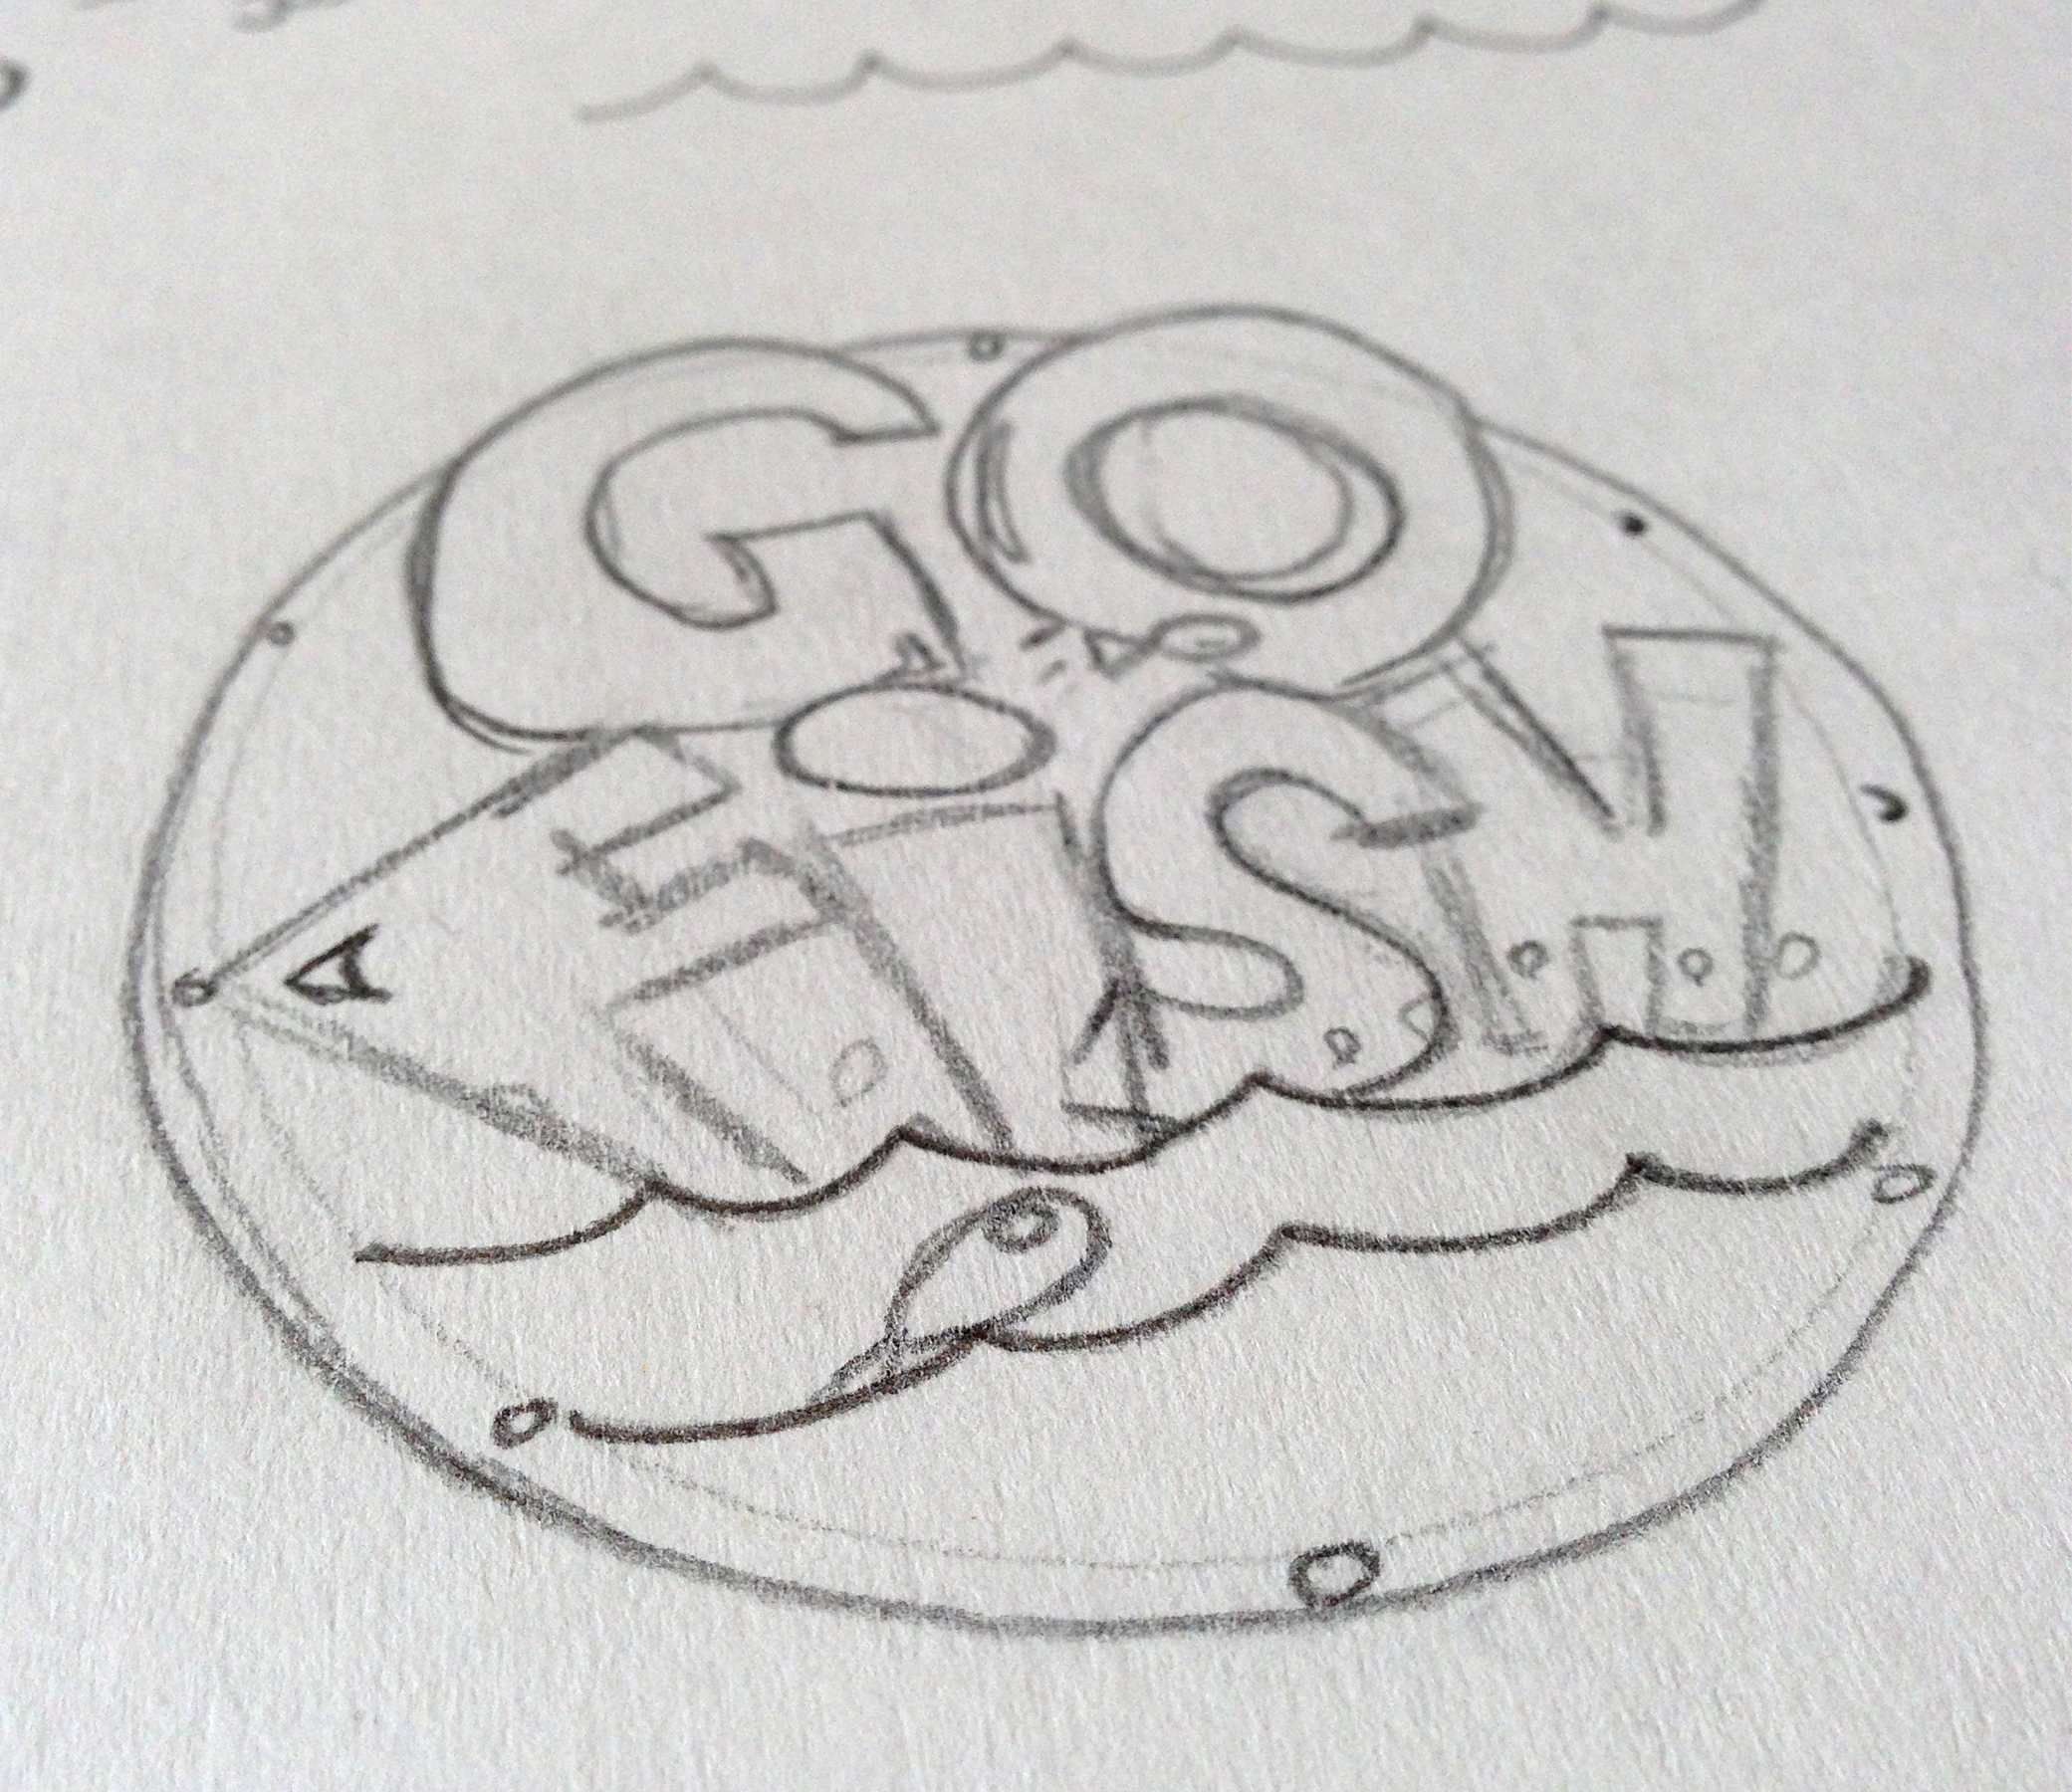 Before taking it to the computer, I did a quick sketch of my idea for the main graphic.